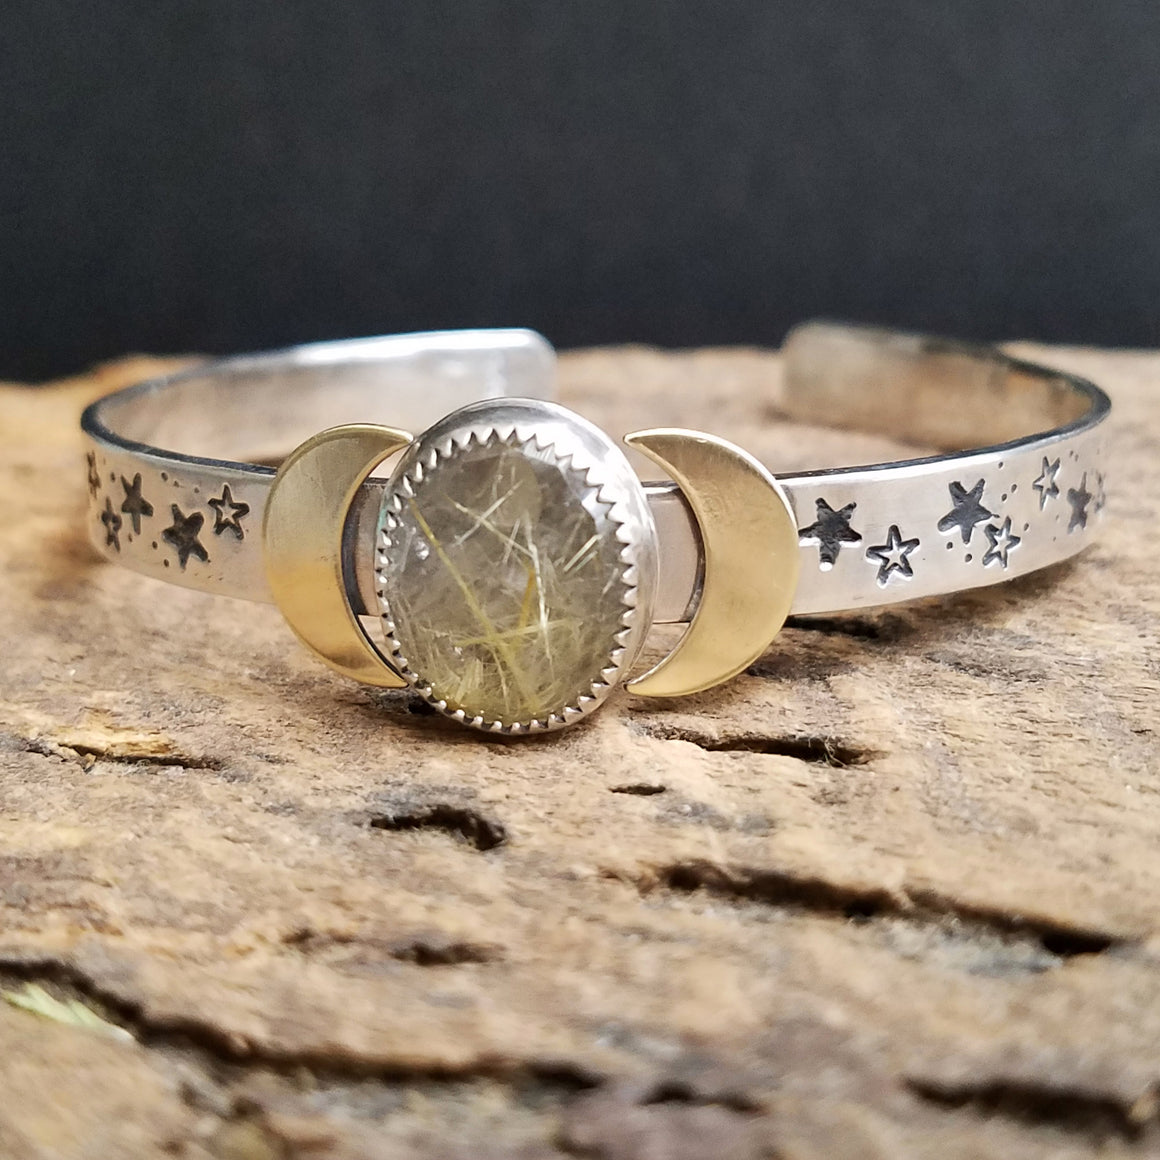 Golden Rutile Quartz Moon and Stars Cuff Bracelet